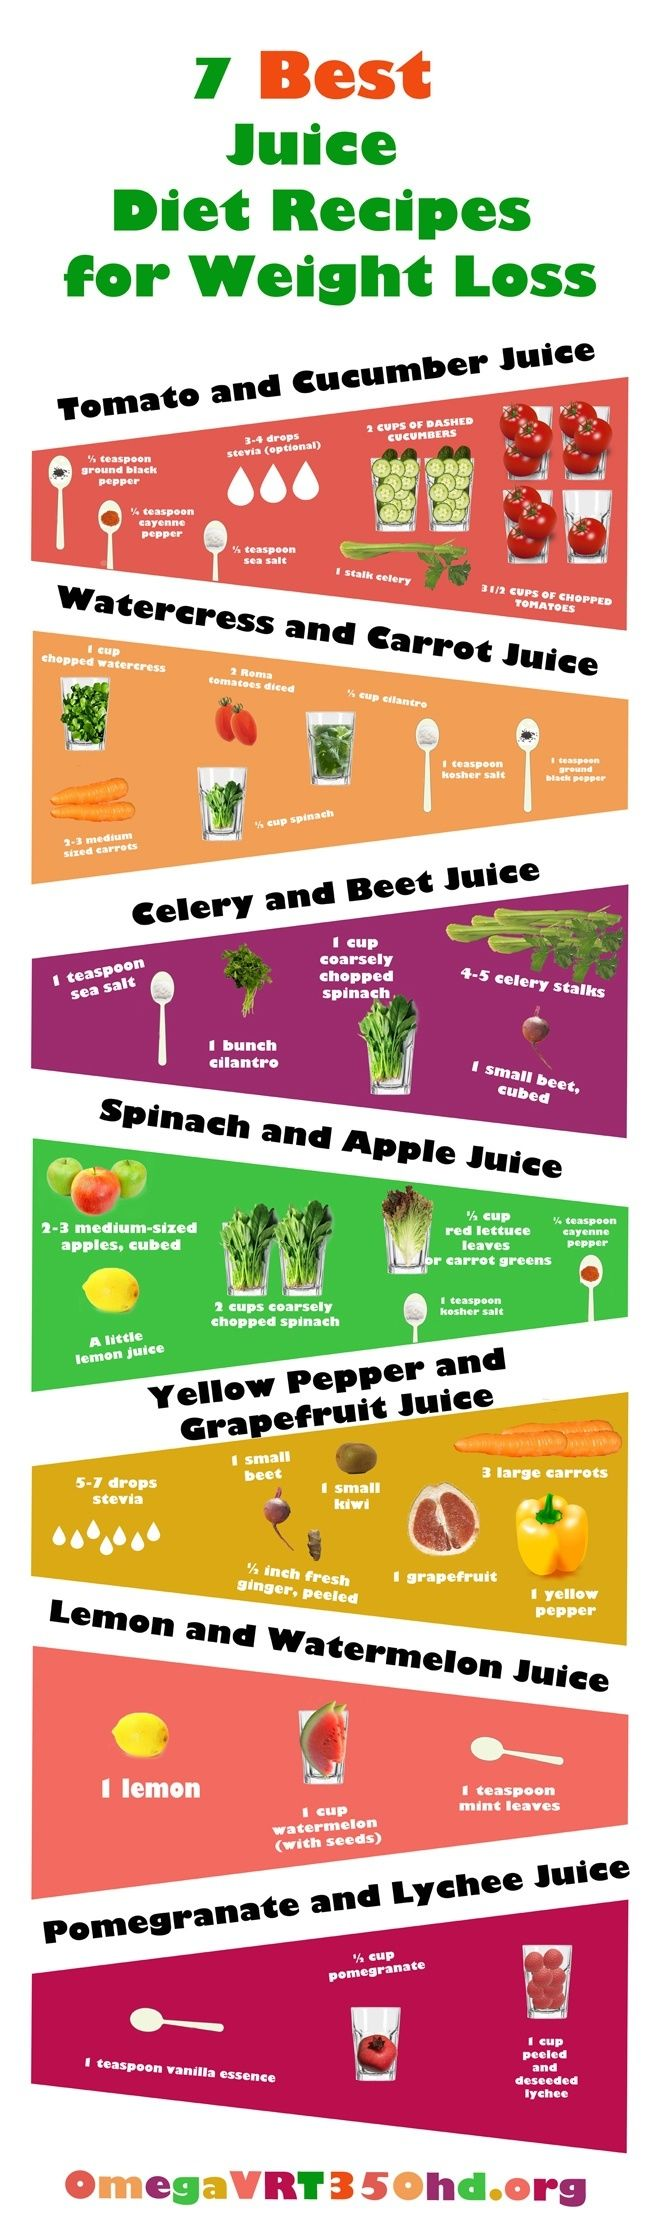 7 Best Juice Diet Recipes For Weight Loss Pictures, Photos ...